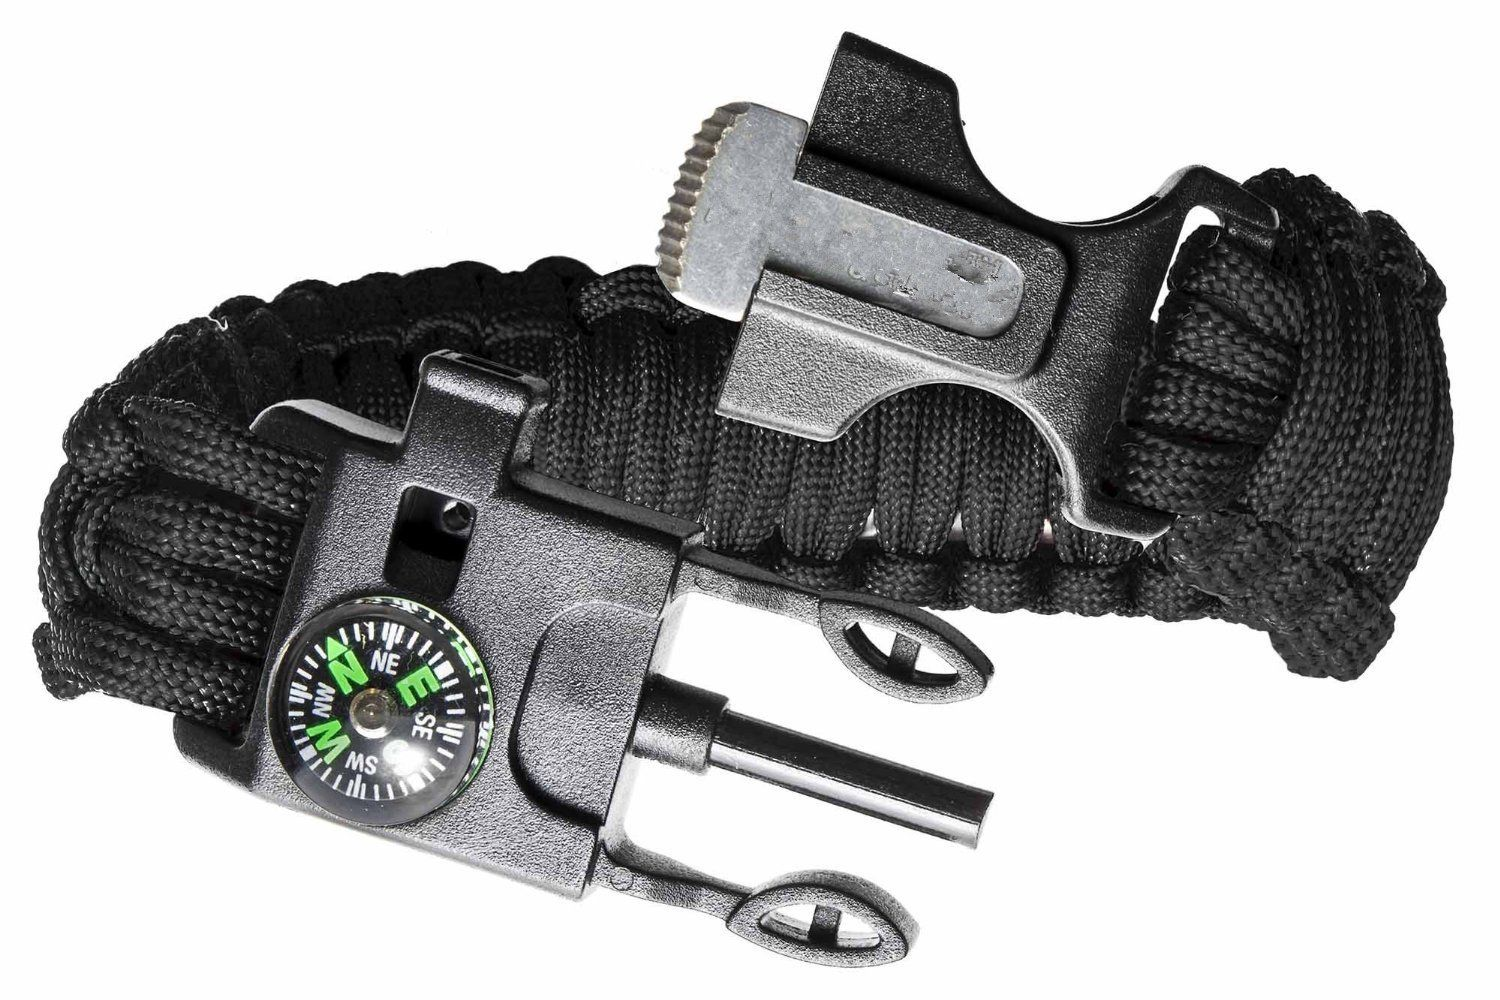 Hain Ultimate Outdoor Paracord Survival Kit 4 Different